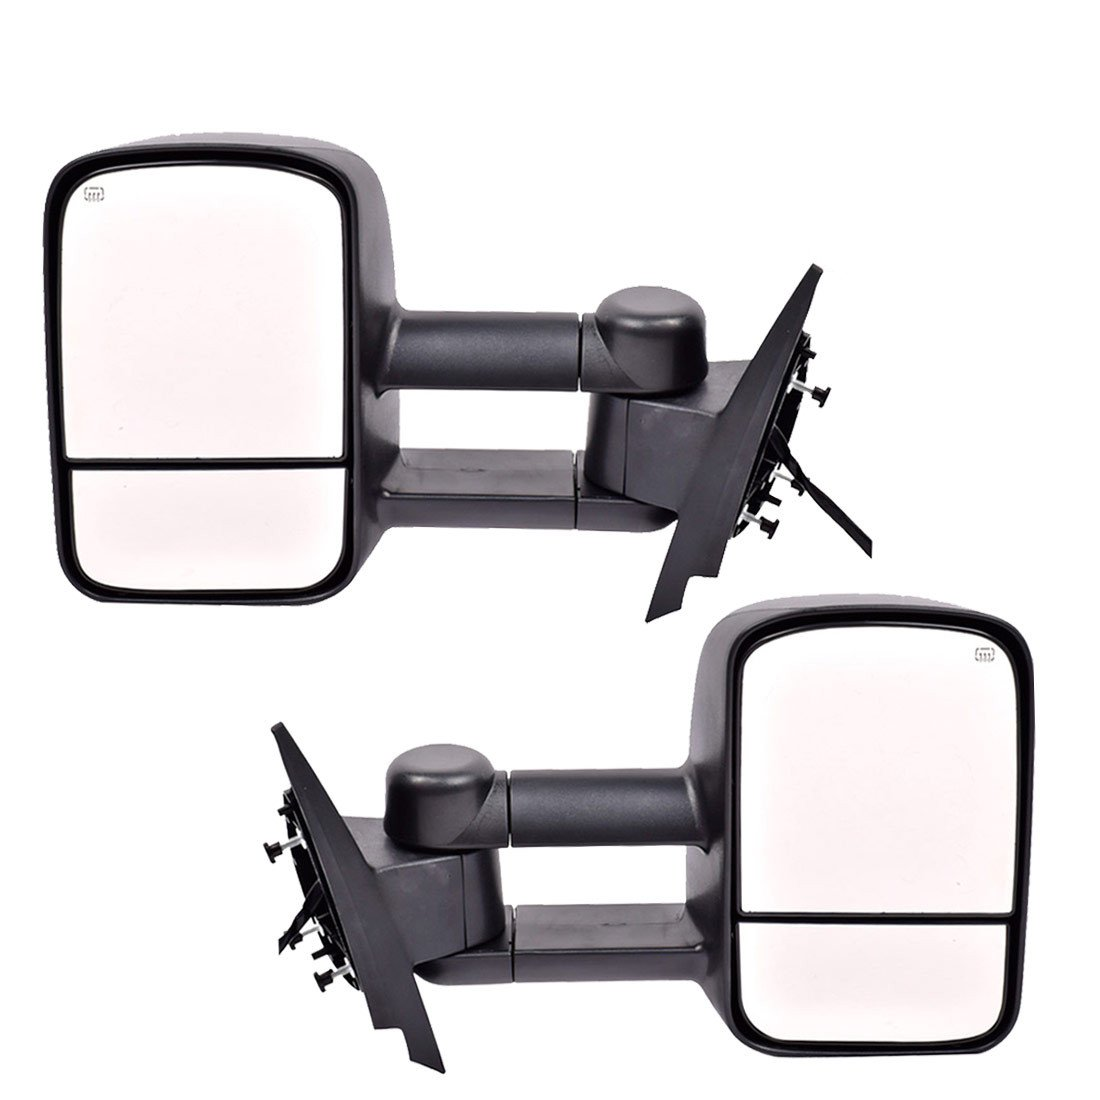 Amazon.com: DEDC Towing Mirrors Silverado Side View Mirrors Power Heated  with Manual Folding Extending for 07-14 Chevy Silverado GMC Sierra 1 Pair:  ...